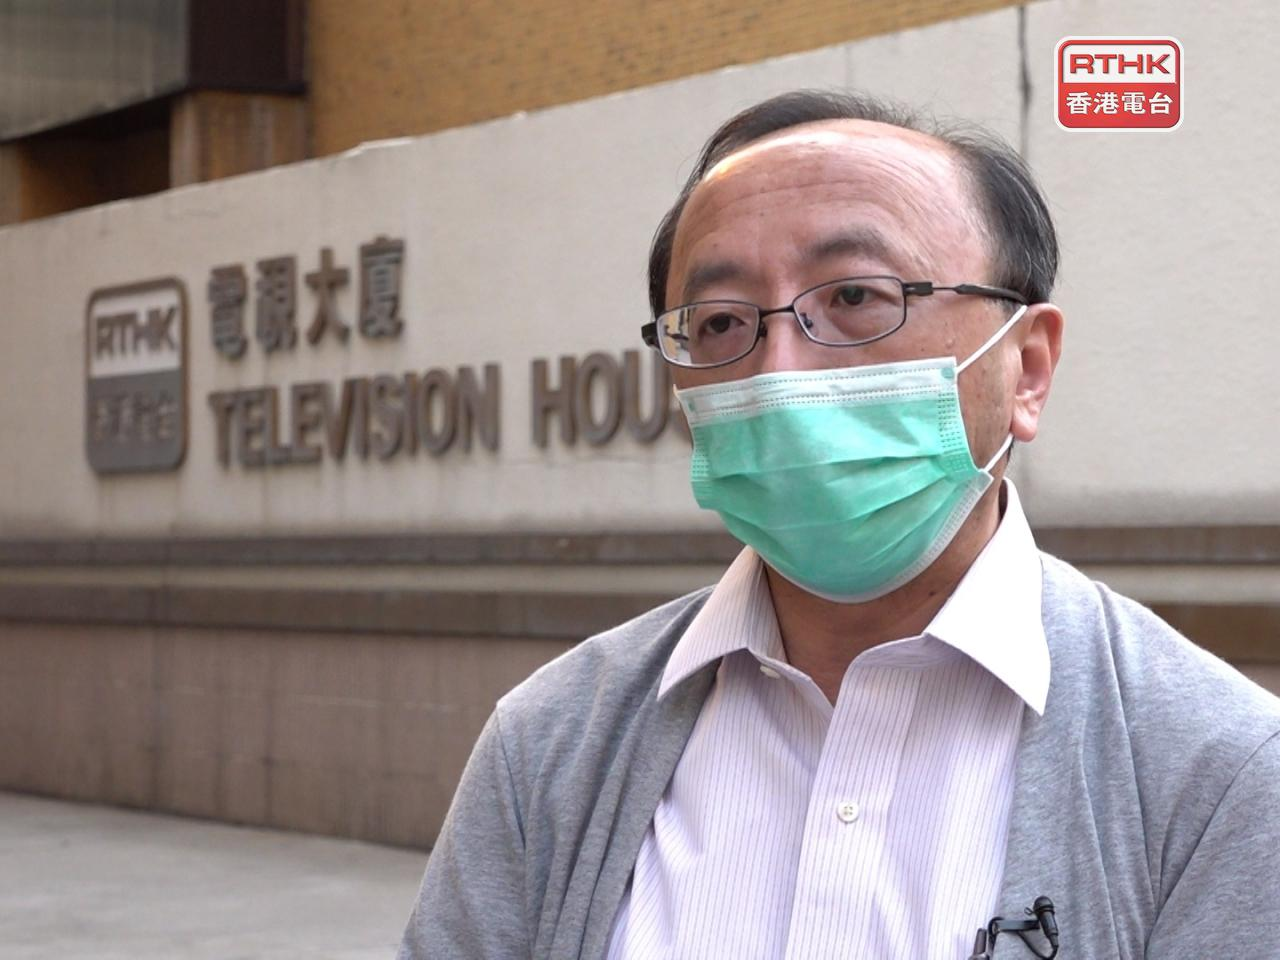 Eric Cheung expressed sadness that the students were 'stripped of their rights to be students'. File photo: RTHK